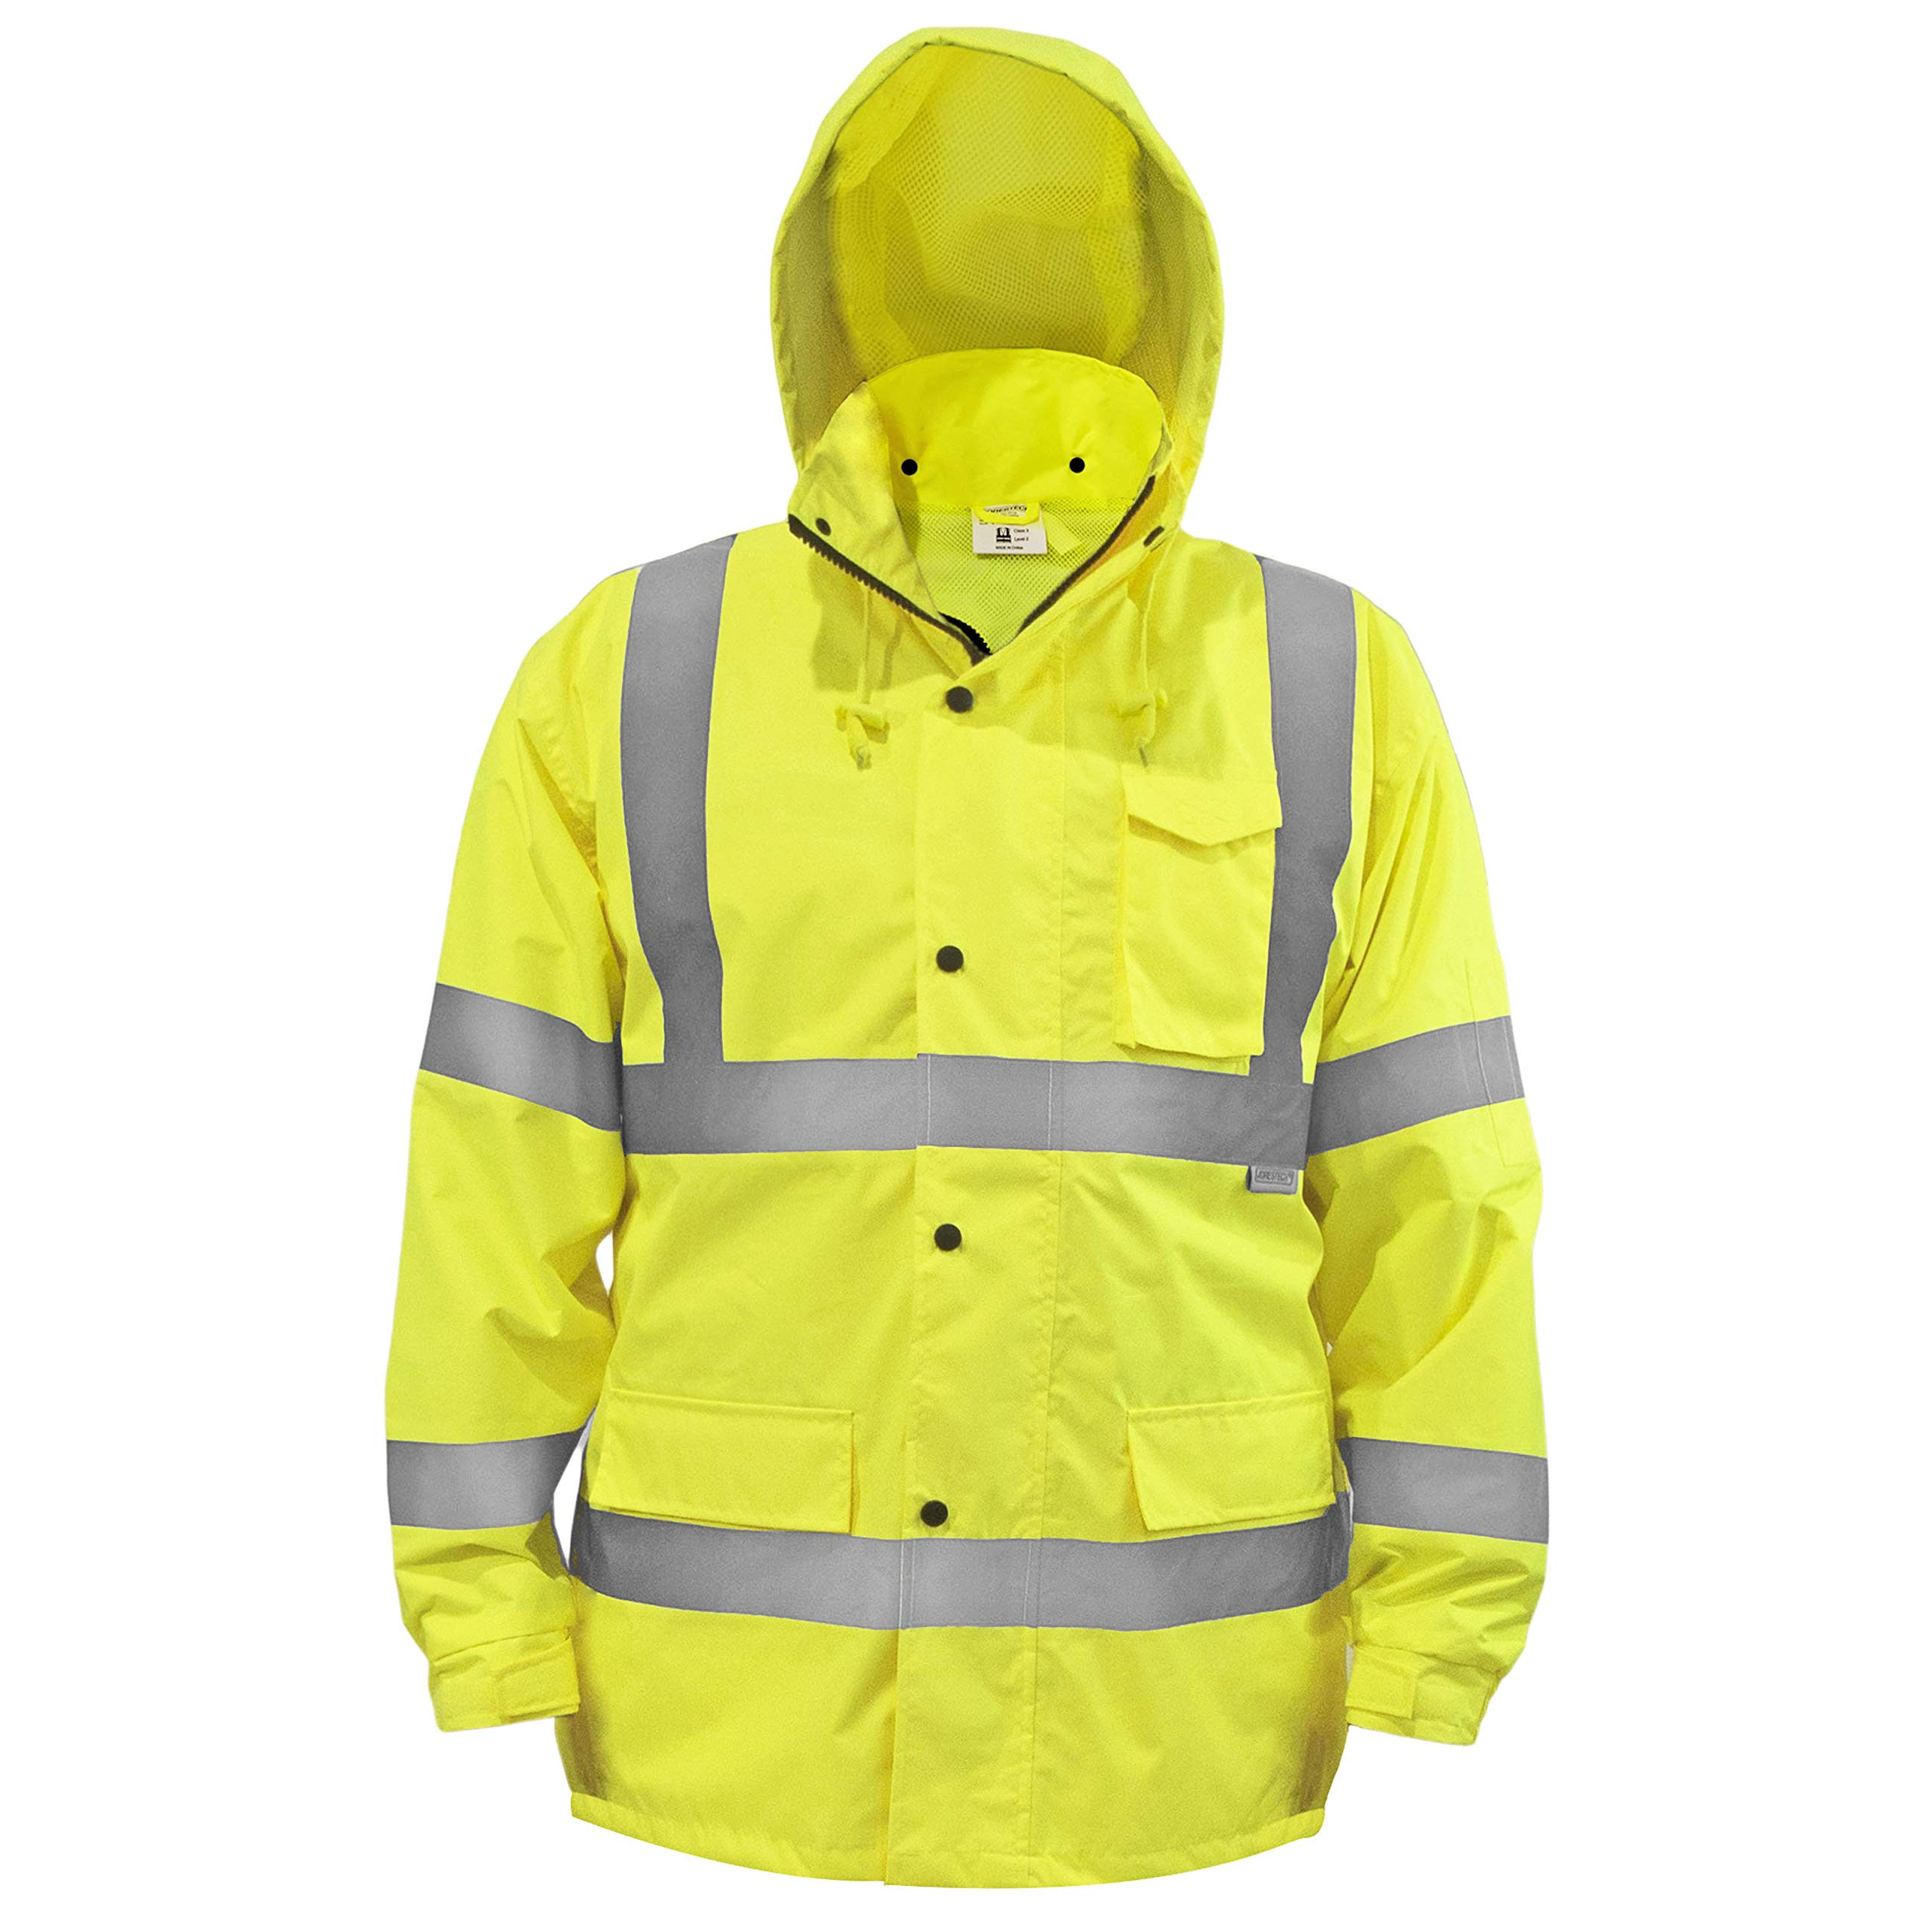 JORESTECH Safety Rain Jacket Waterproof Reflective High Visibility with Detachable Hood and Interior Mesh Yellow/Lime ANSI Class 3 Level 2 Type R JK-03 (XL) by JORESTECH